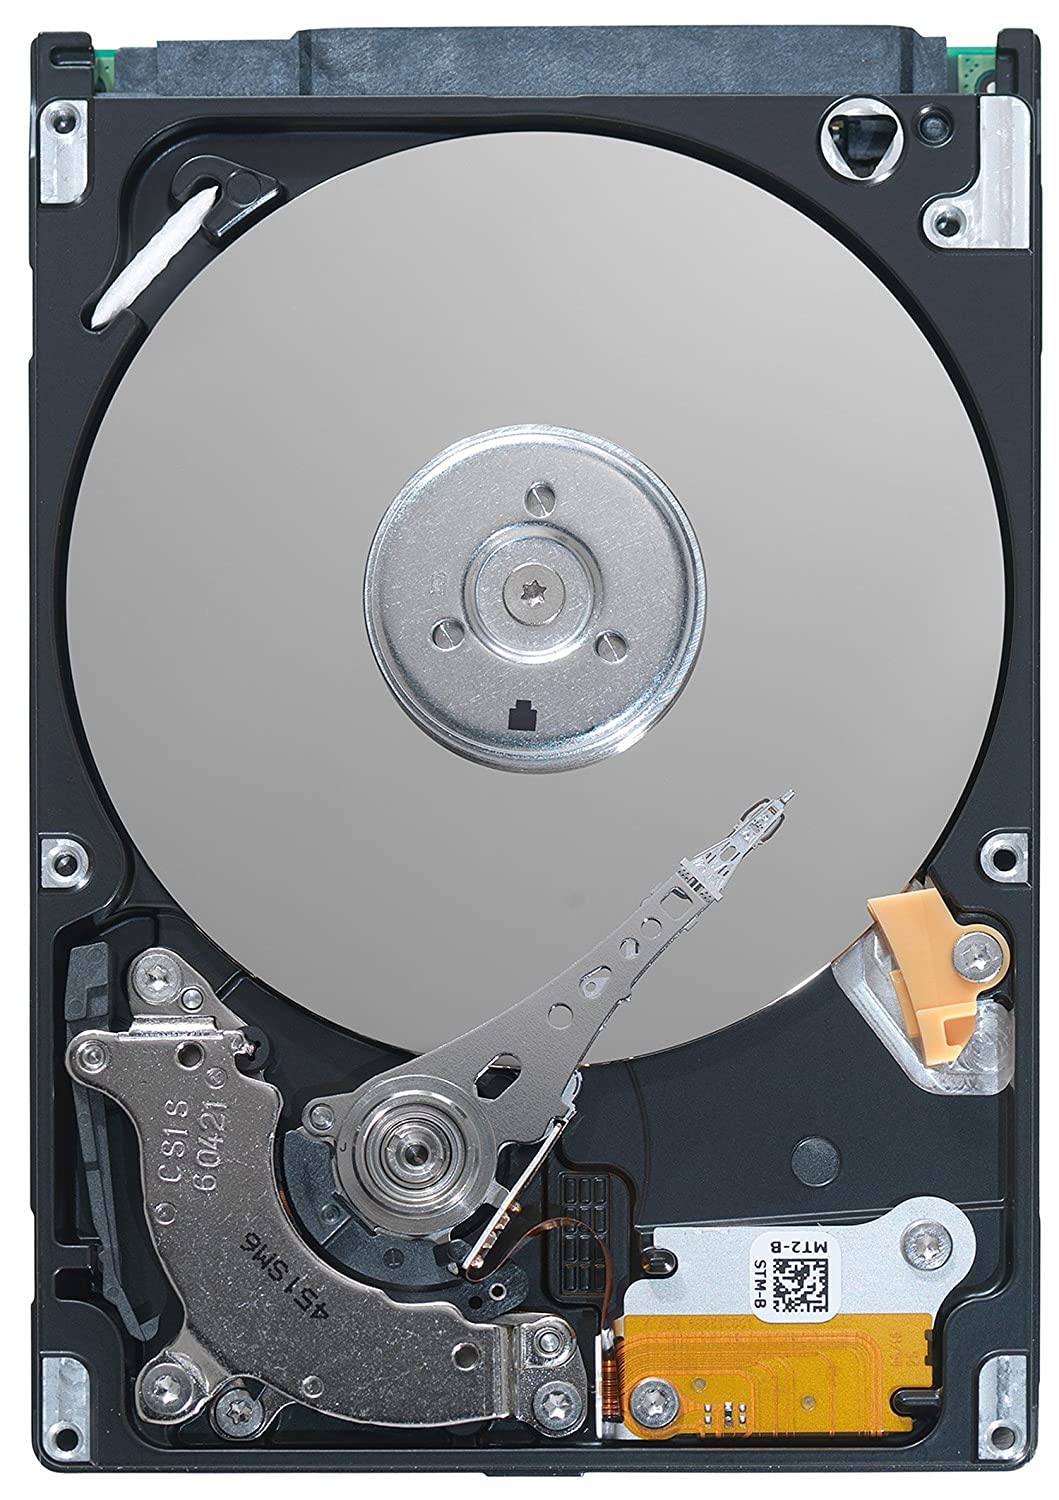 Seagate Momentus 7200 500gb 7200rpm Sata 3gb S 16mb To Make It More Fun We Going Tear Pieces Pretty New 1tb Cache 25 Inch Internal Nb Hard Drive St9500420as Bare Electronics